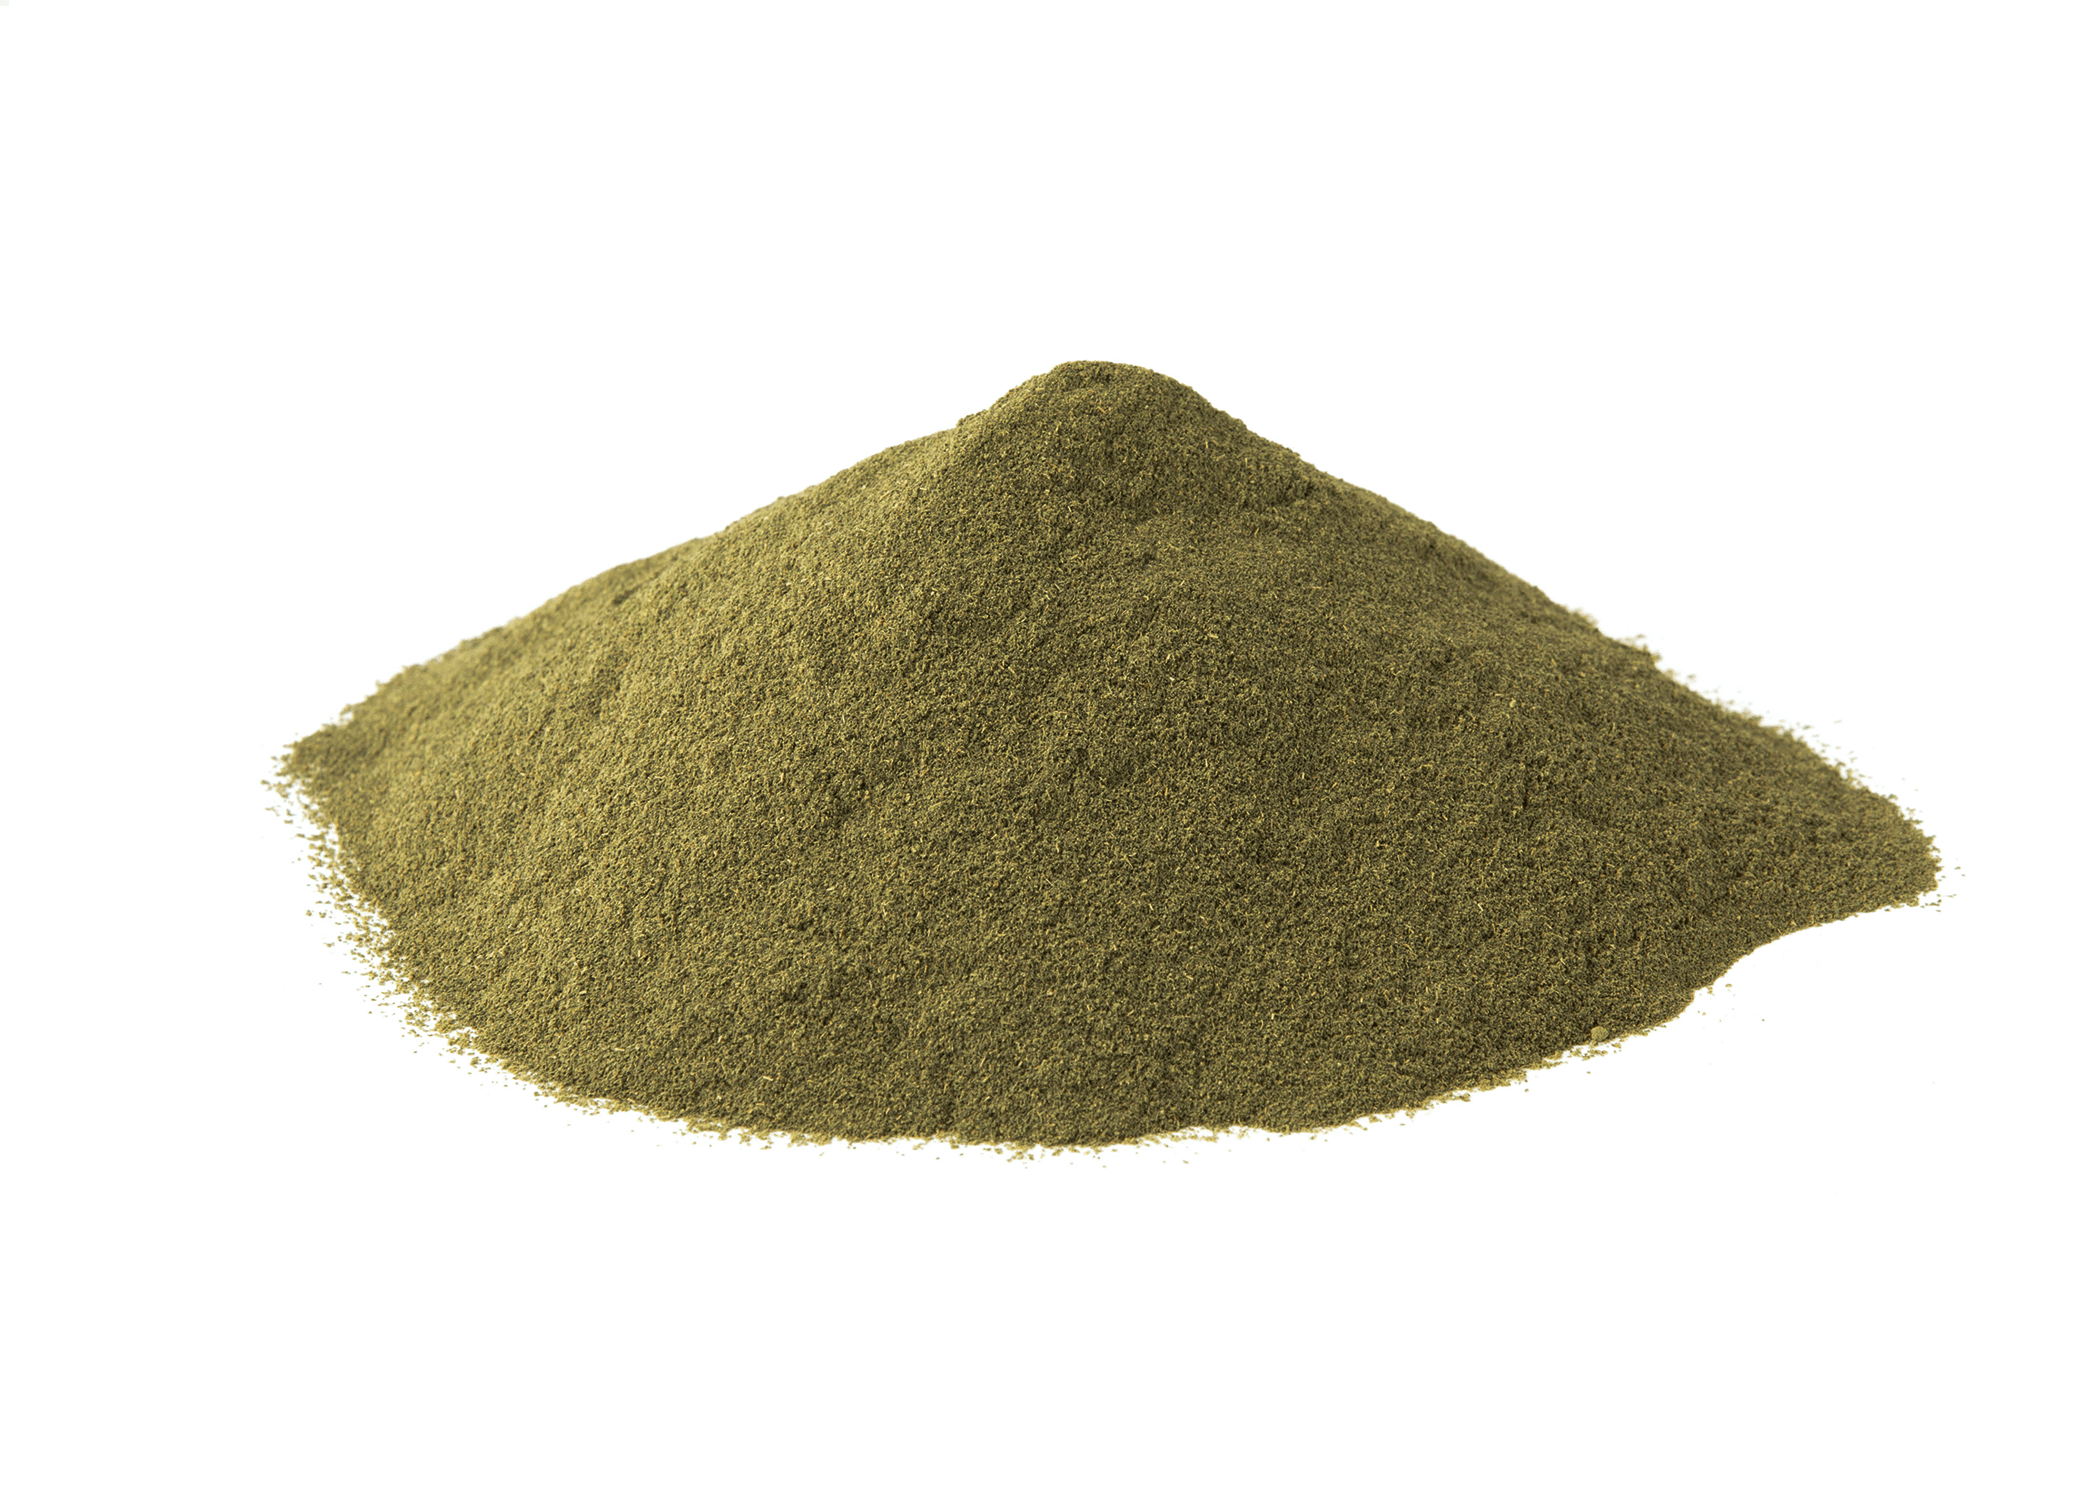 Image result for kratom crazy white indonesian